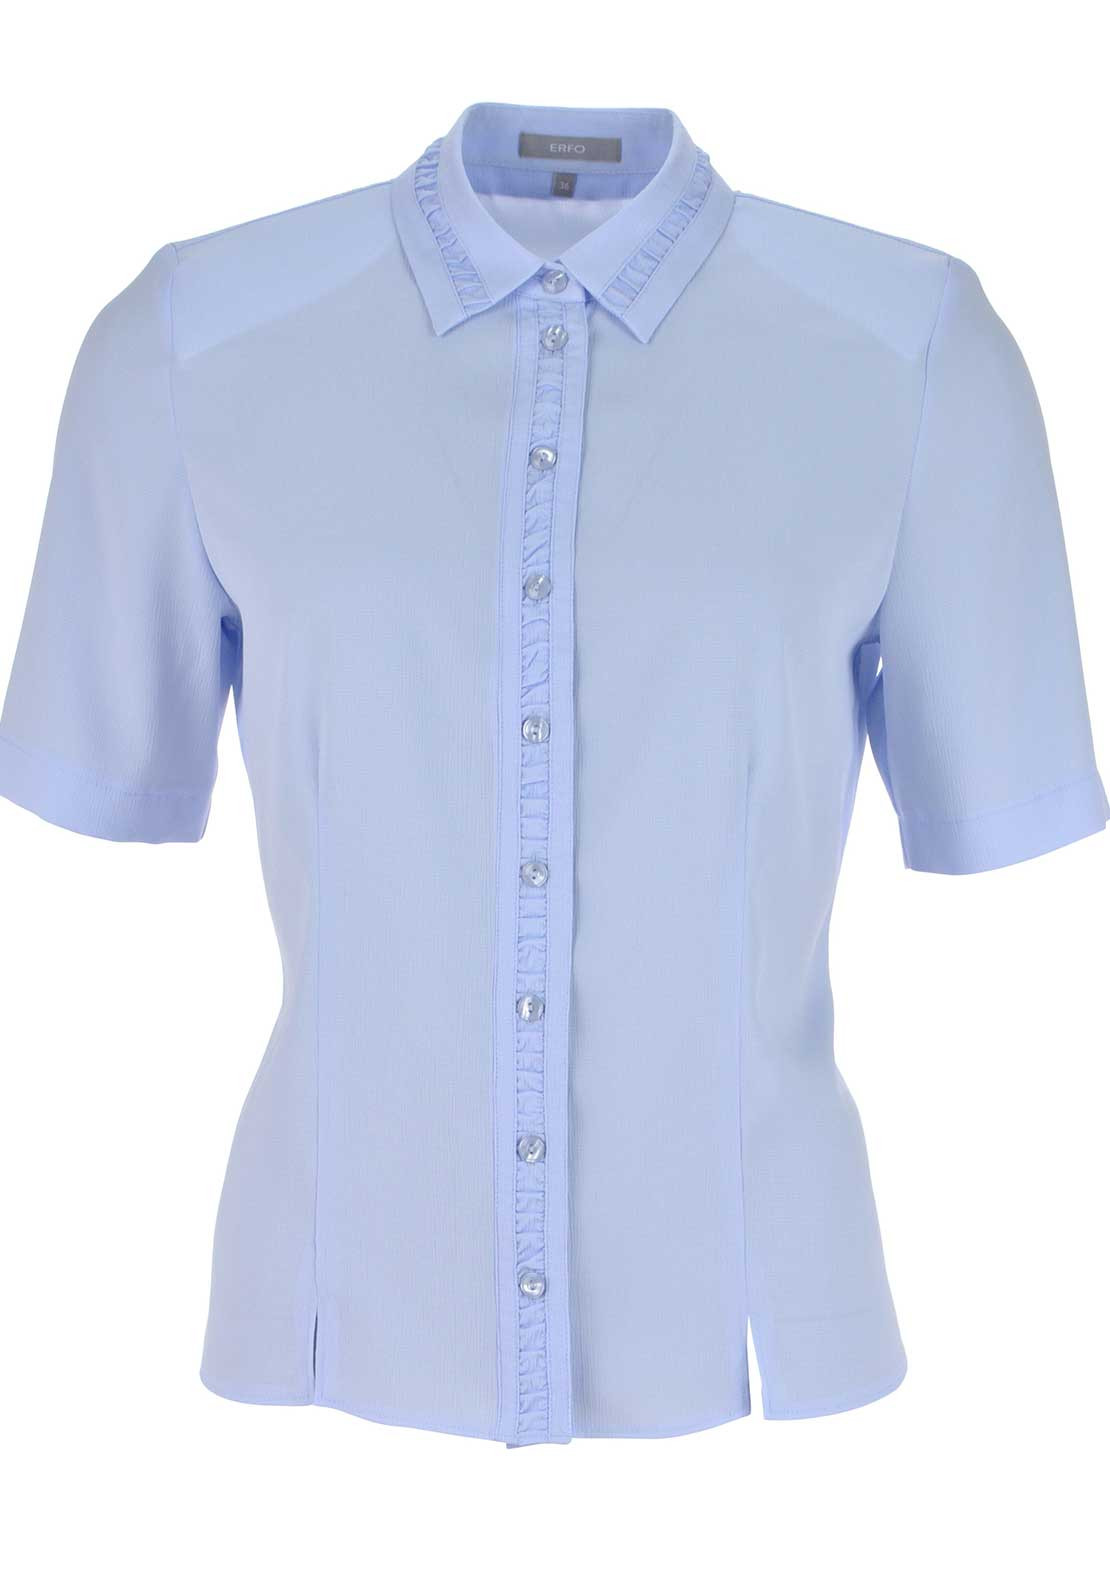 ERFO Textured Short Sleeve Blouse, Pale Blue